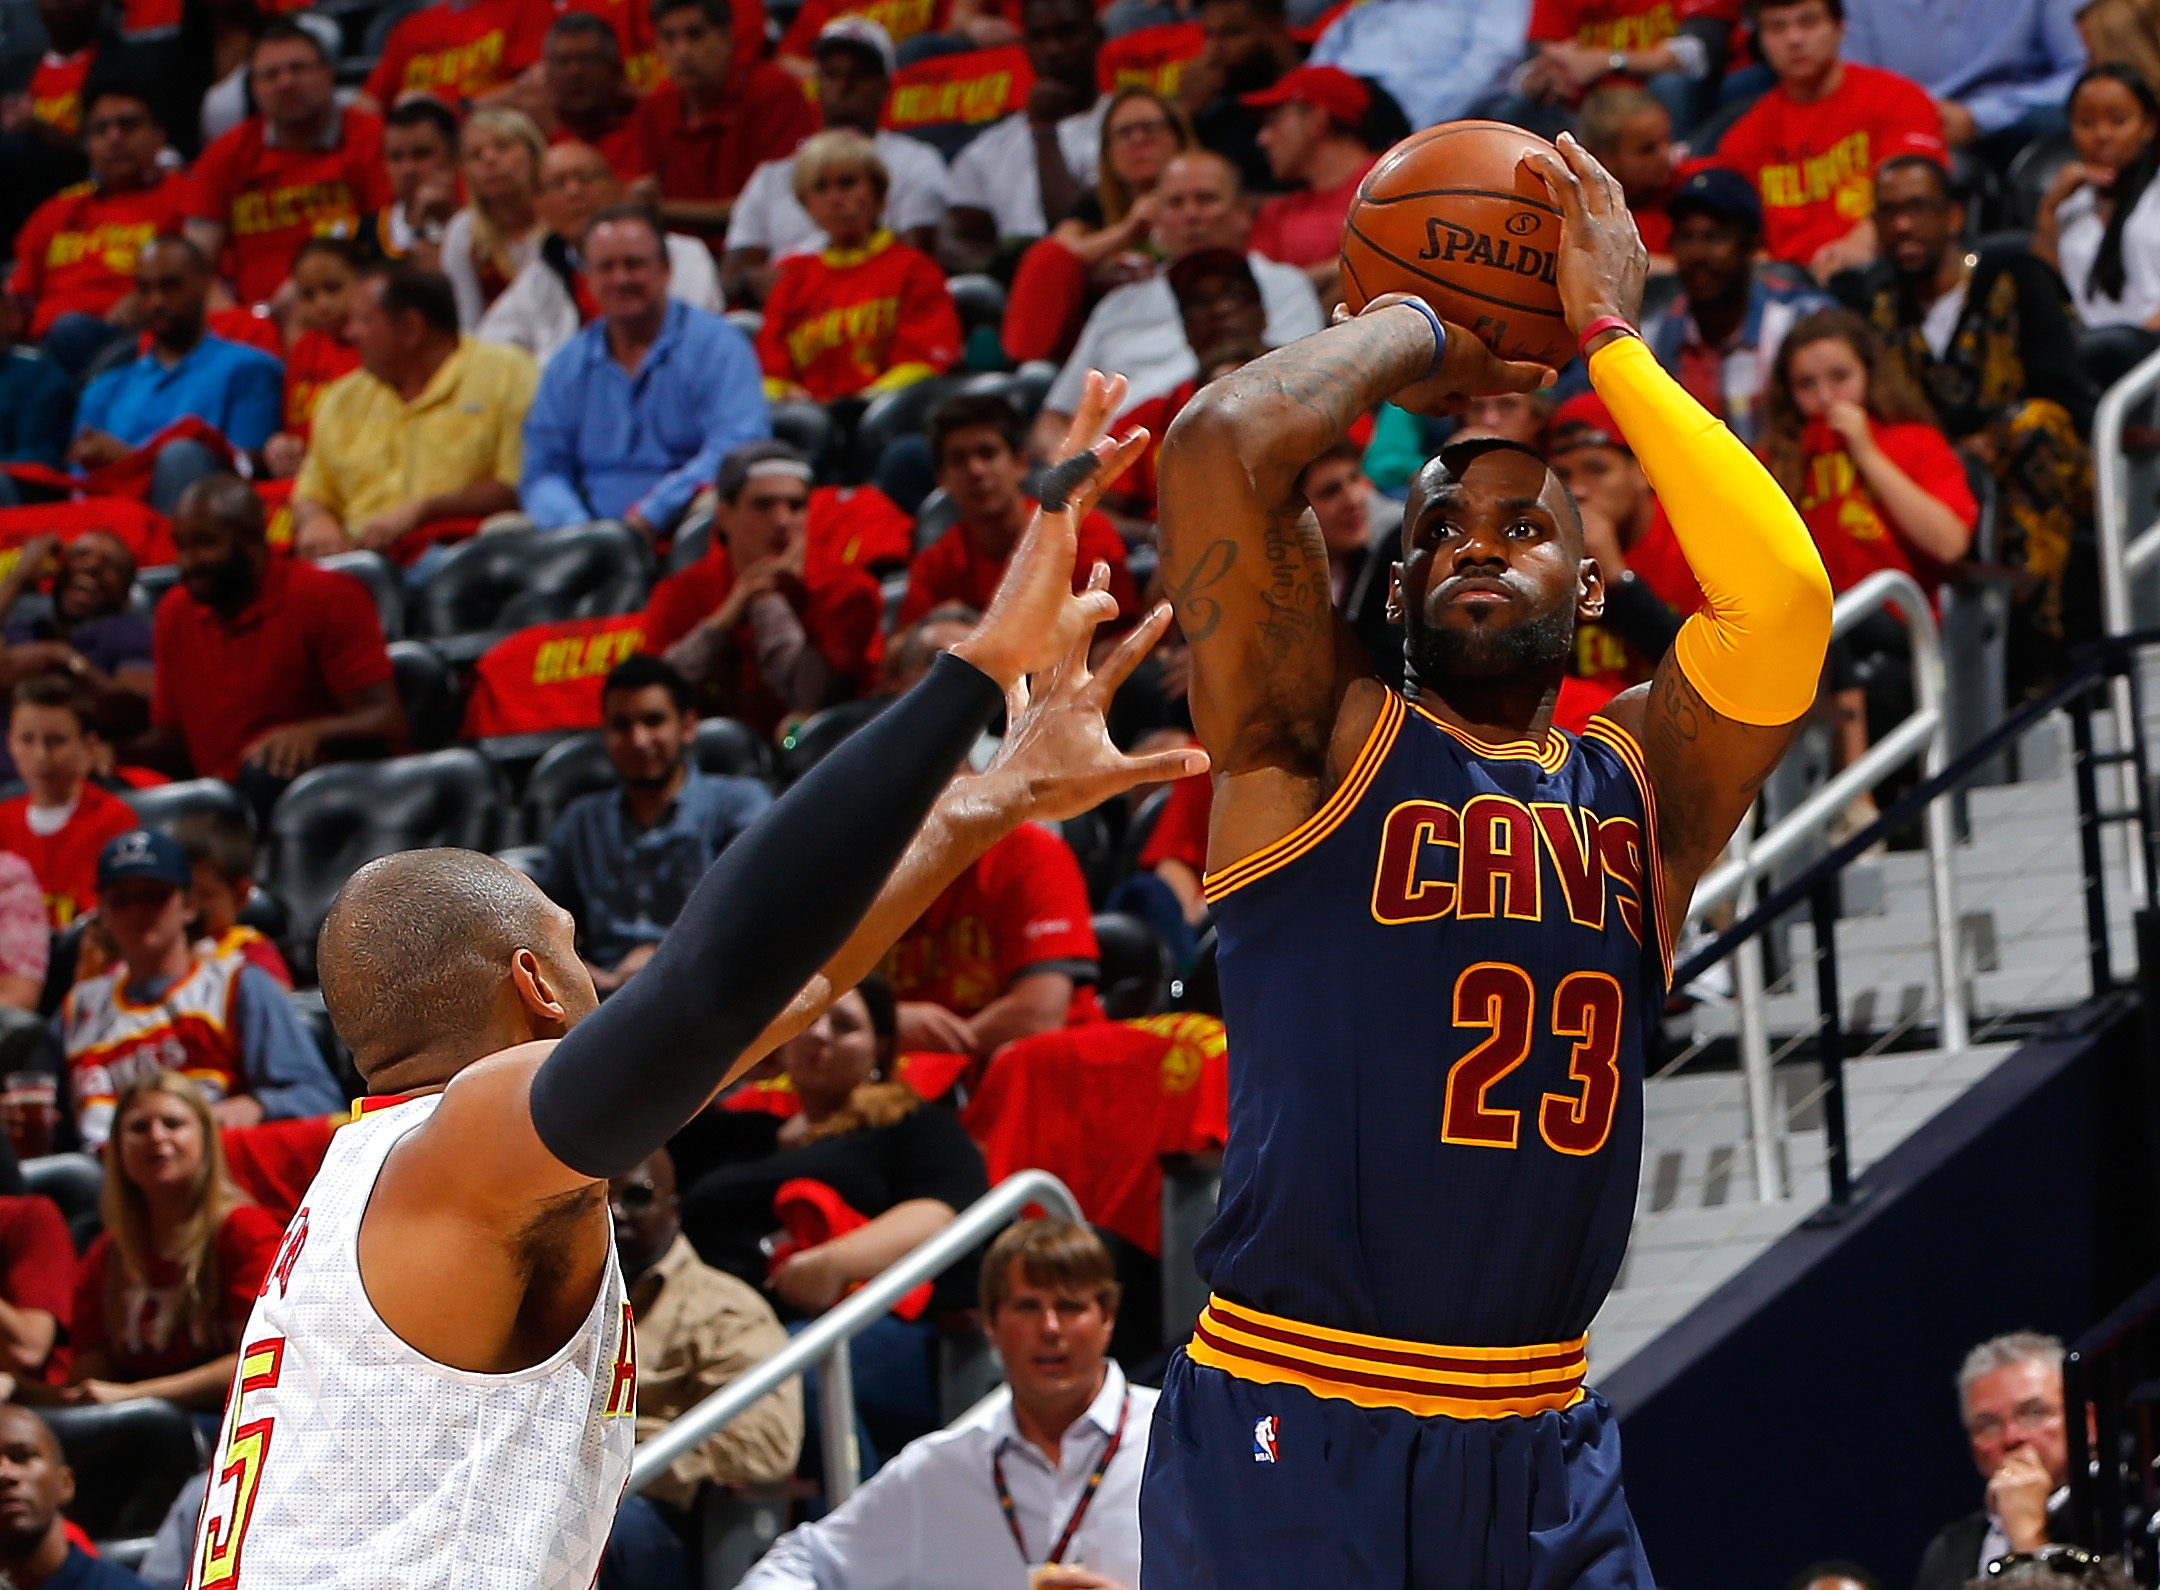 ATLANTA, GA - MAY 06:  LeBron James #23 of the Cleveland Cavaliers shoots against Al Horford #15 of the Atlanta Hawks in Game Three of the Eastern Conference Semifinals during the 2016 NBA Playoffs at Philips Arena on May 6, 2016 in Atlanta, Georgia.  NOT